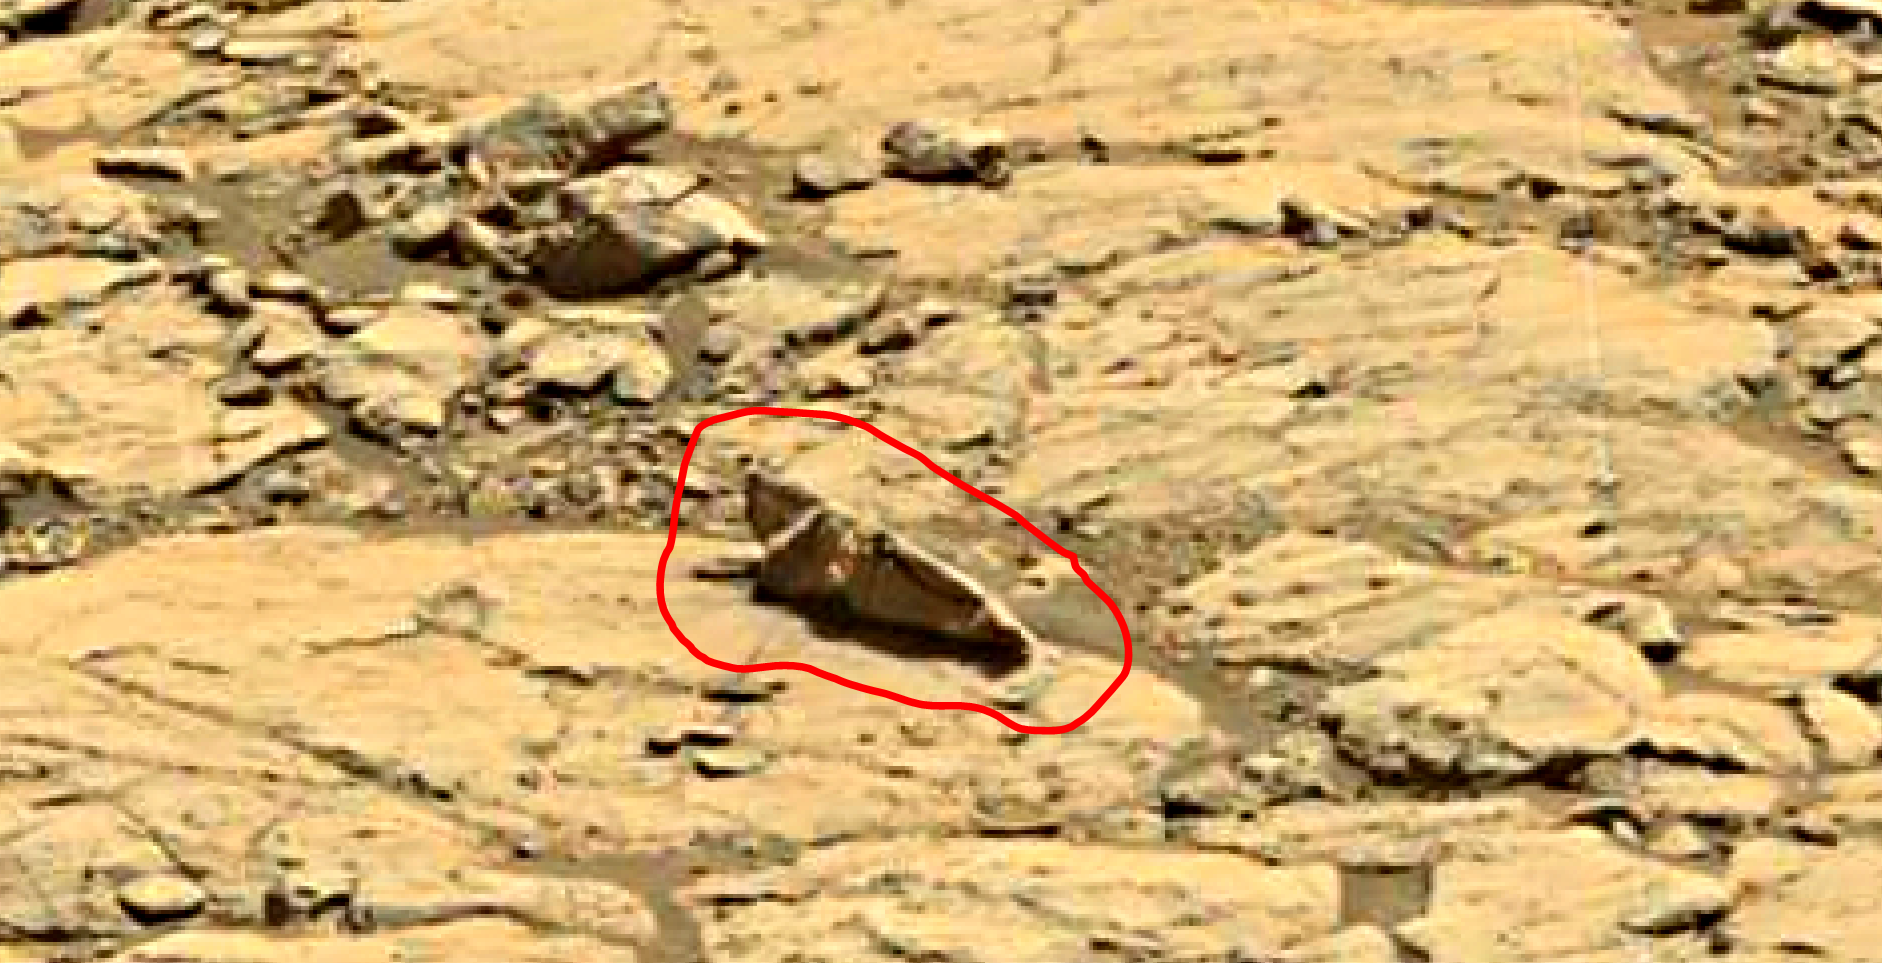 mars sol 1428 anomaly artifacts 5a was life on mars